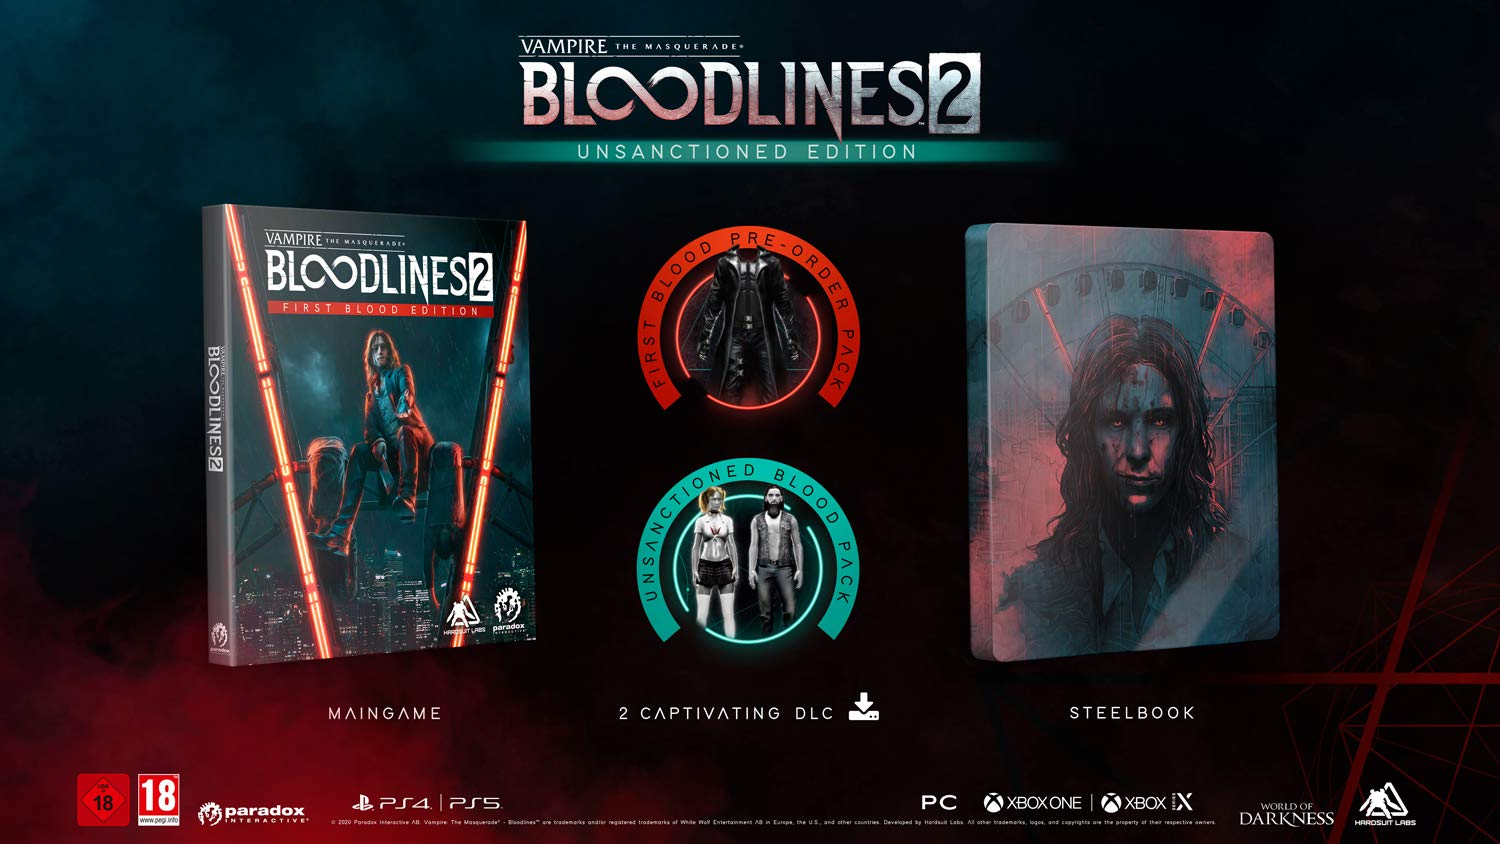 Vampire The Masquerade Bloodlines 2 Unsanctioned Edition